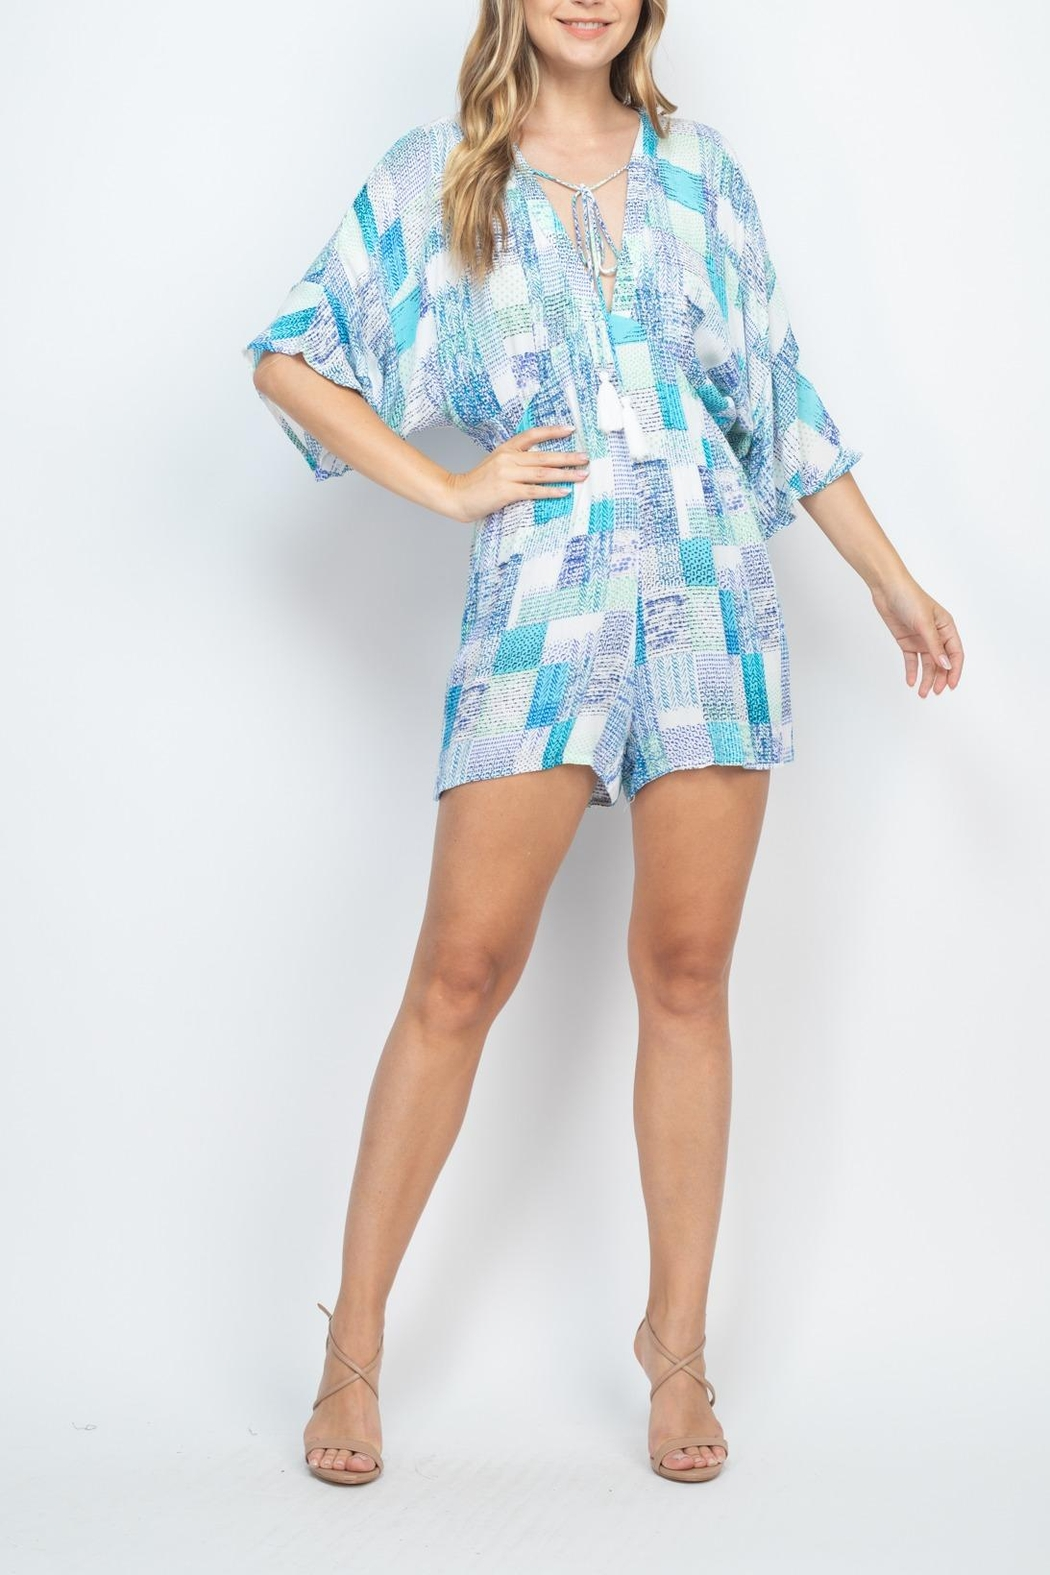 Riah Fashion Off-White-Blue Romper - Side Cropped Image